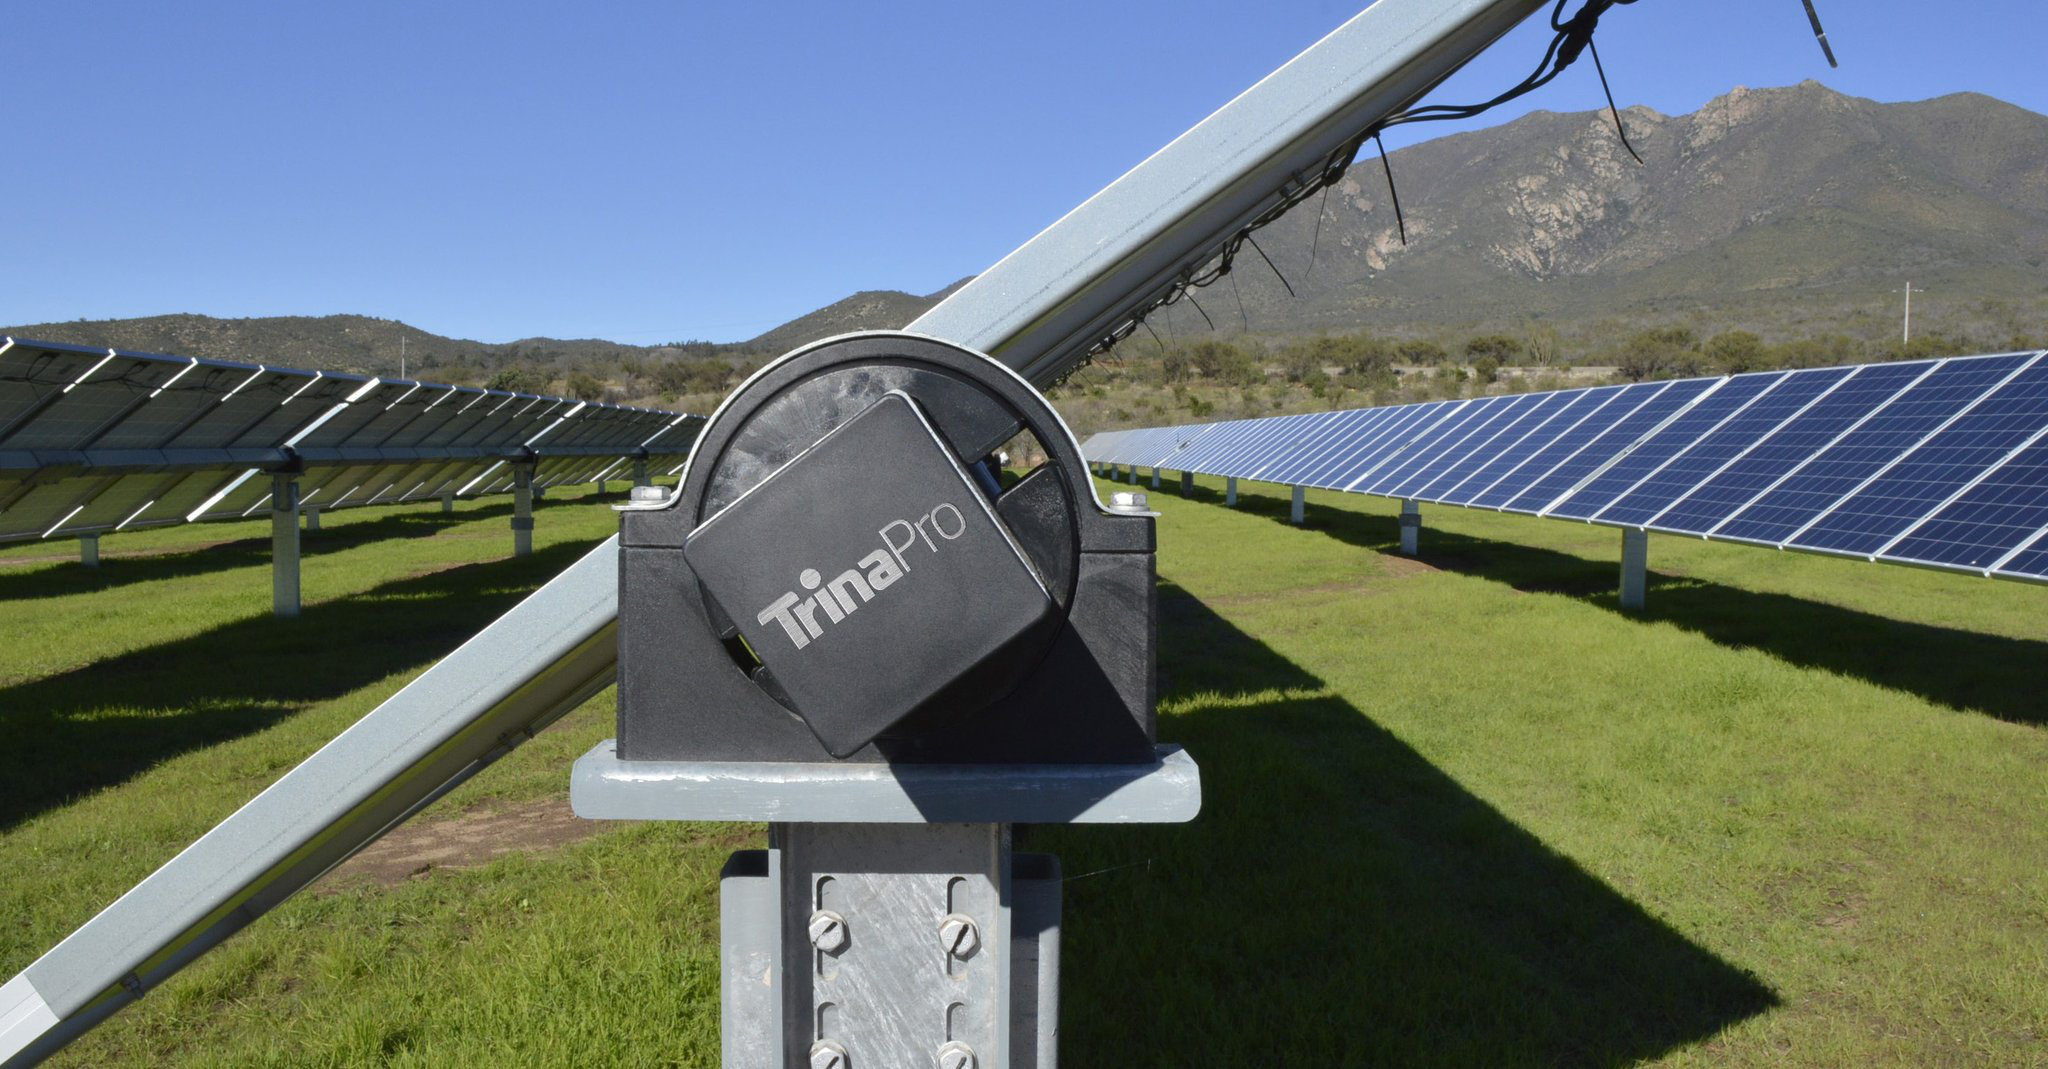 Trina Solar targets margin and LCOE gains with integrated utility-scale system product offering. Image: Trina Solar